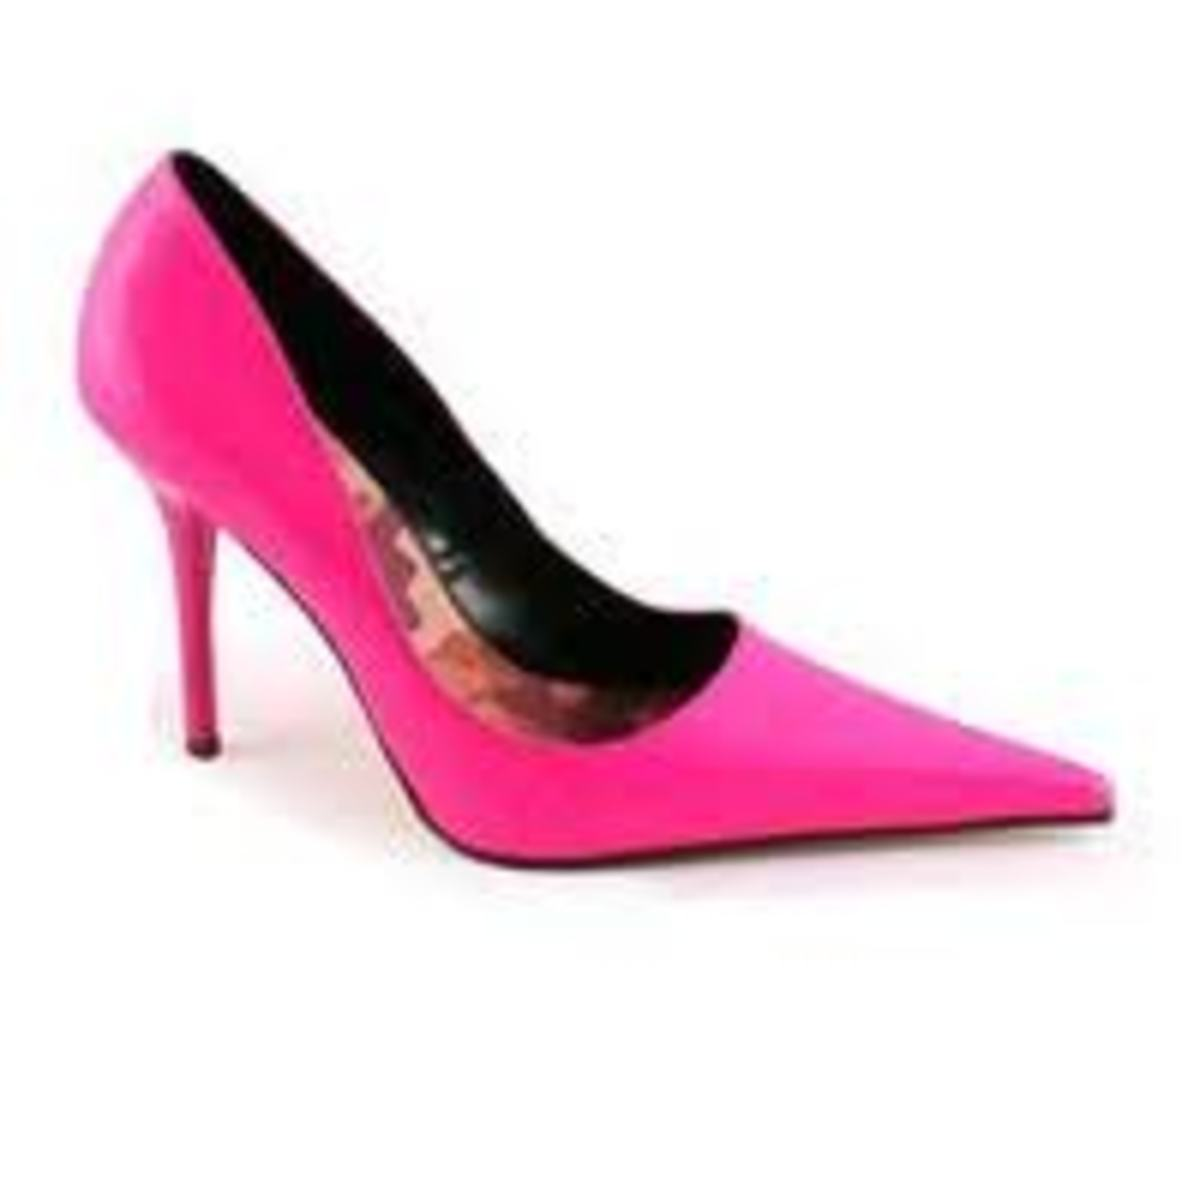 Hot pink high heels come in a variety of styles and colors.